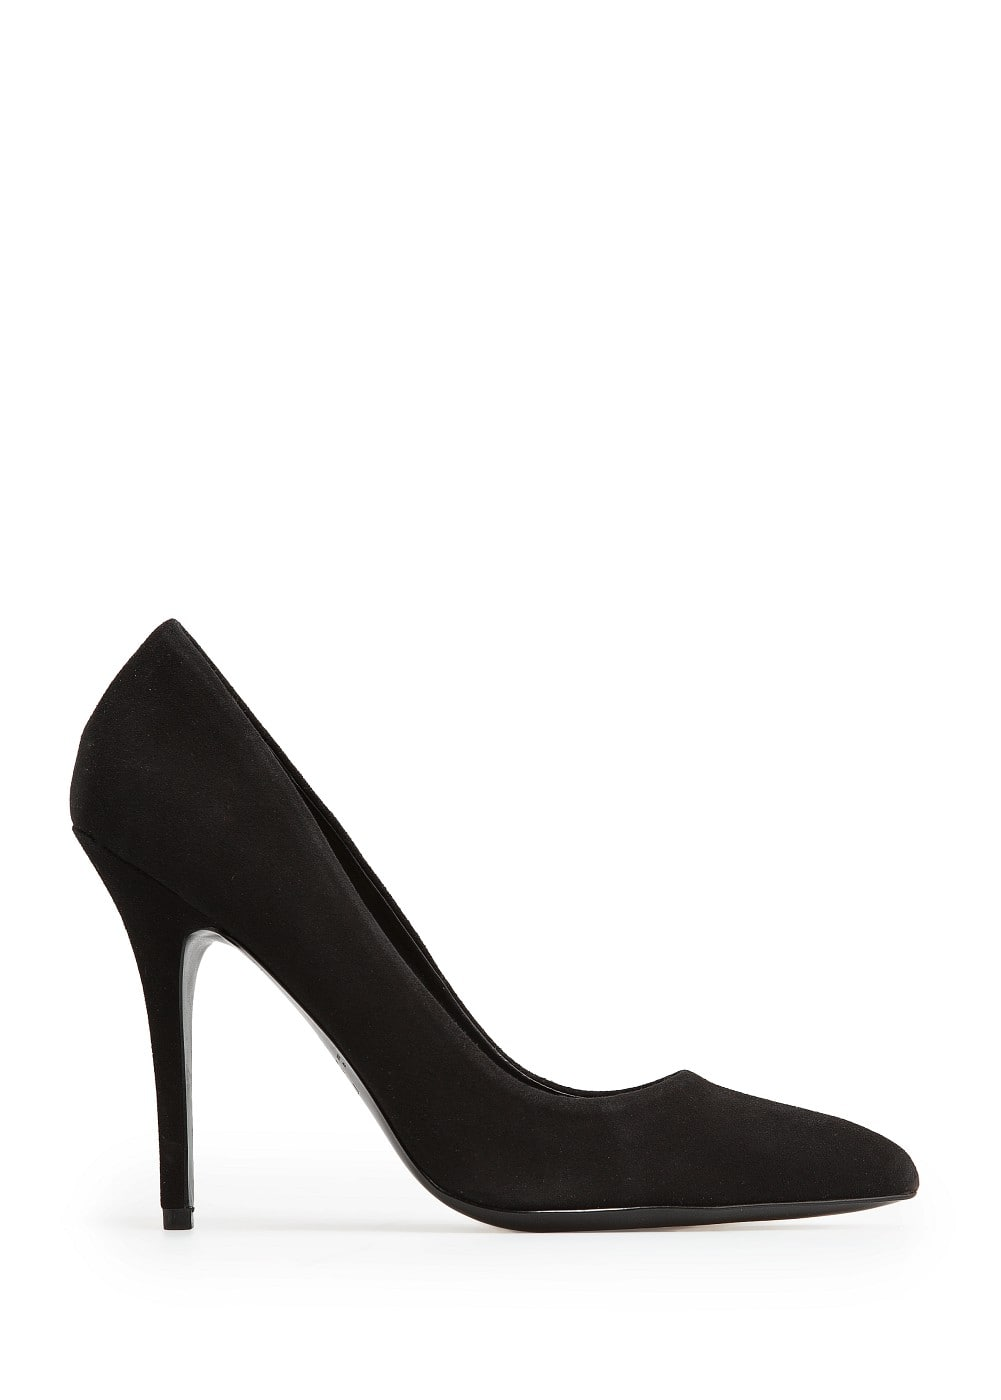 Suede stiletto shoes